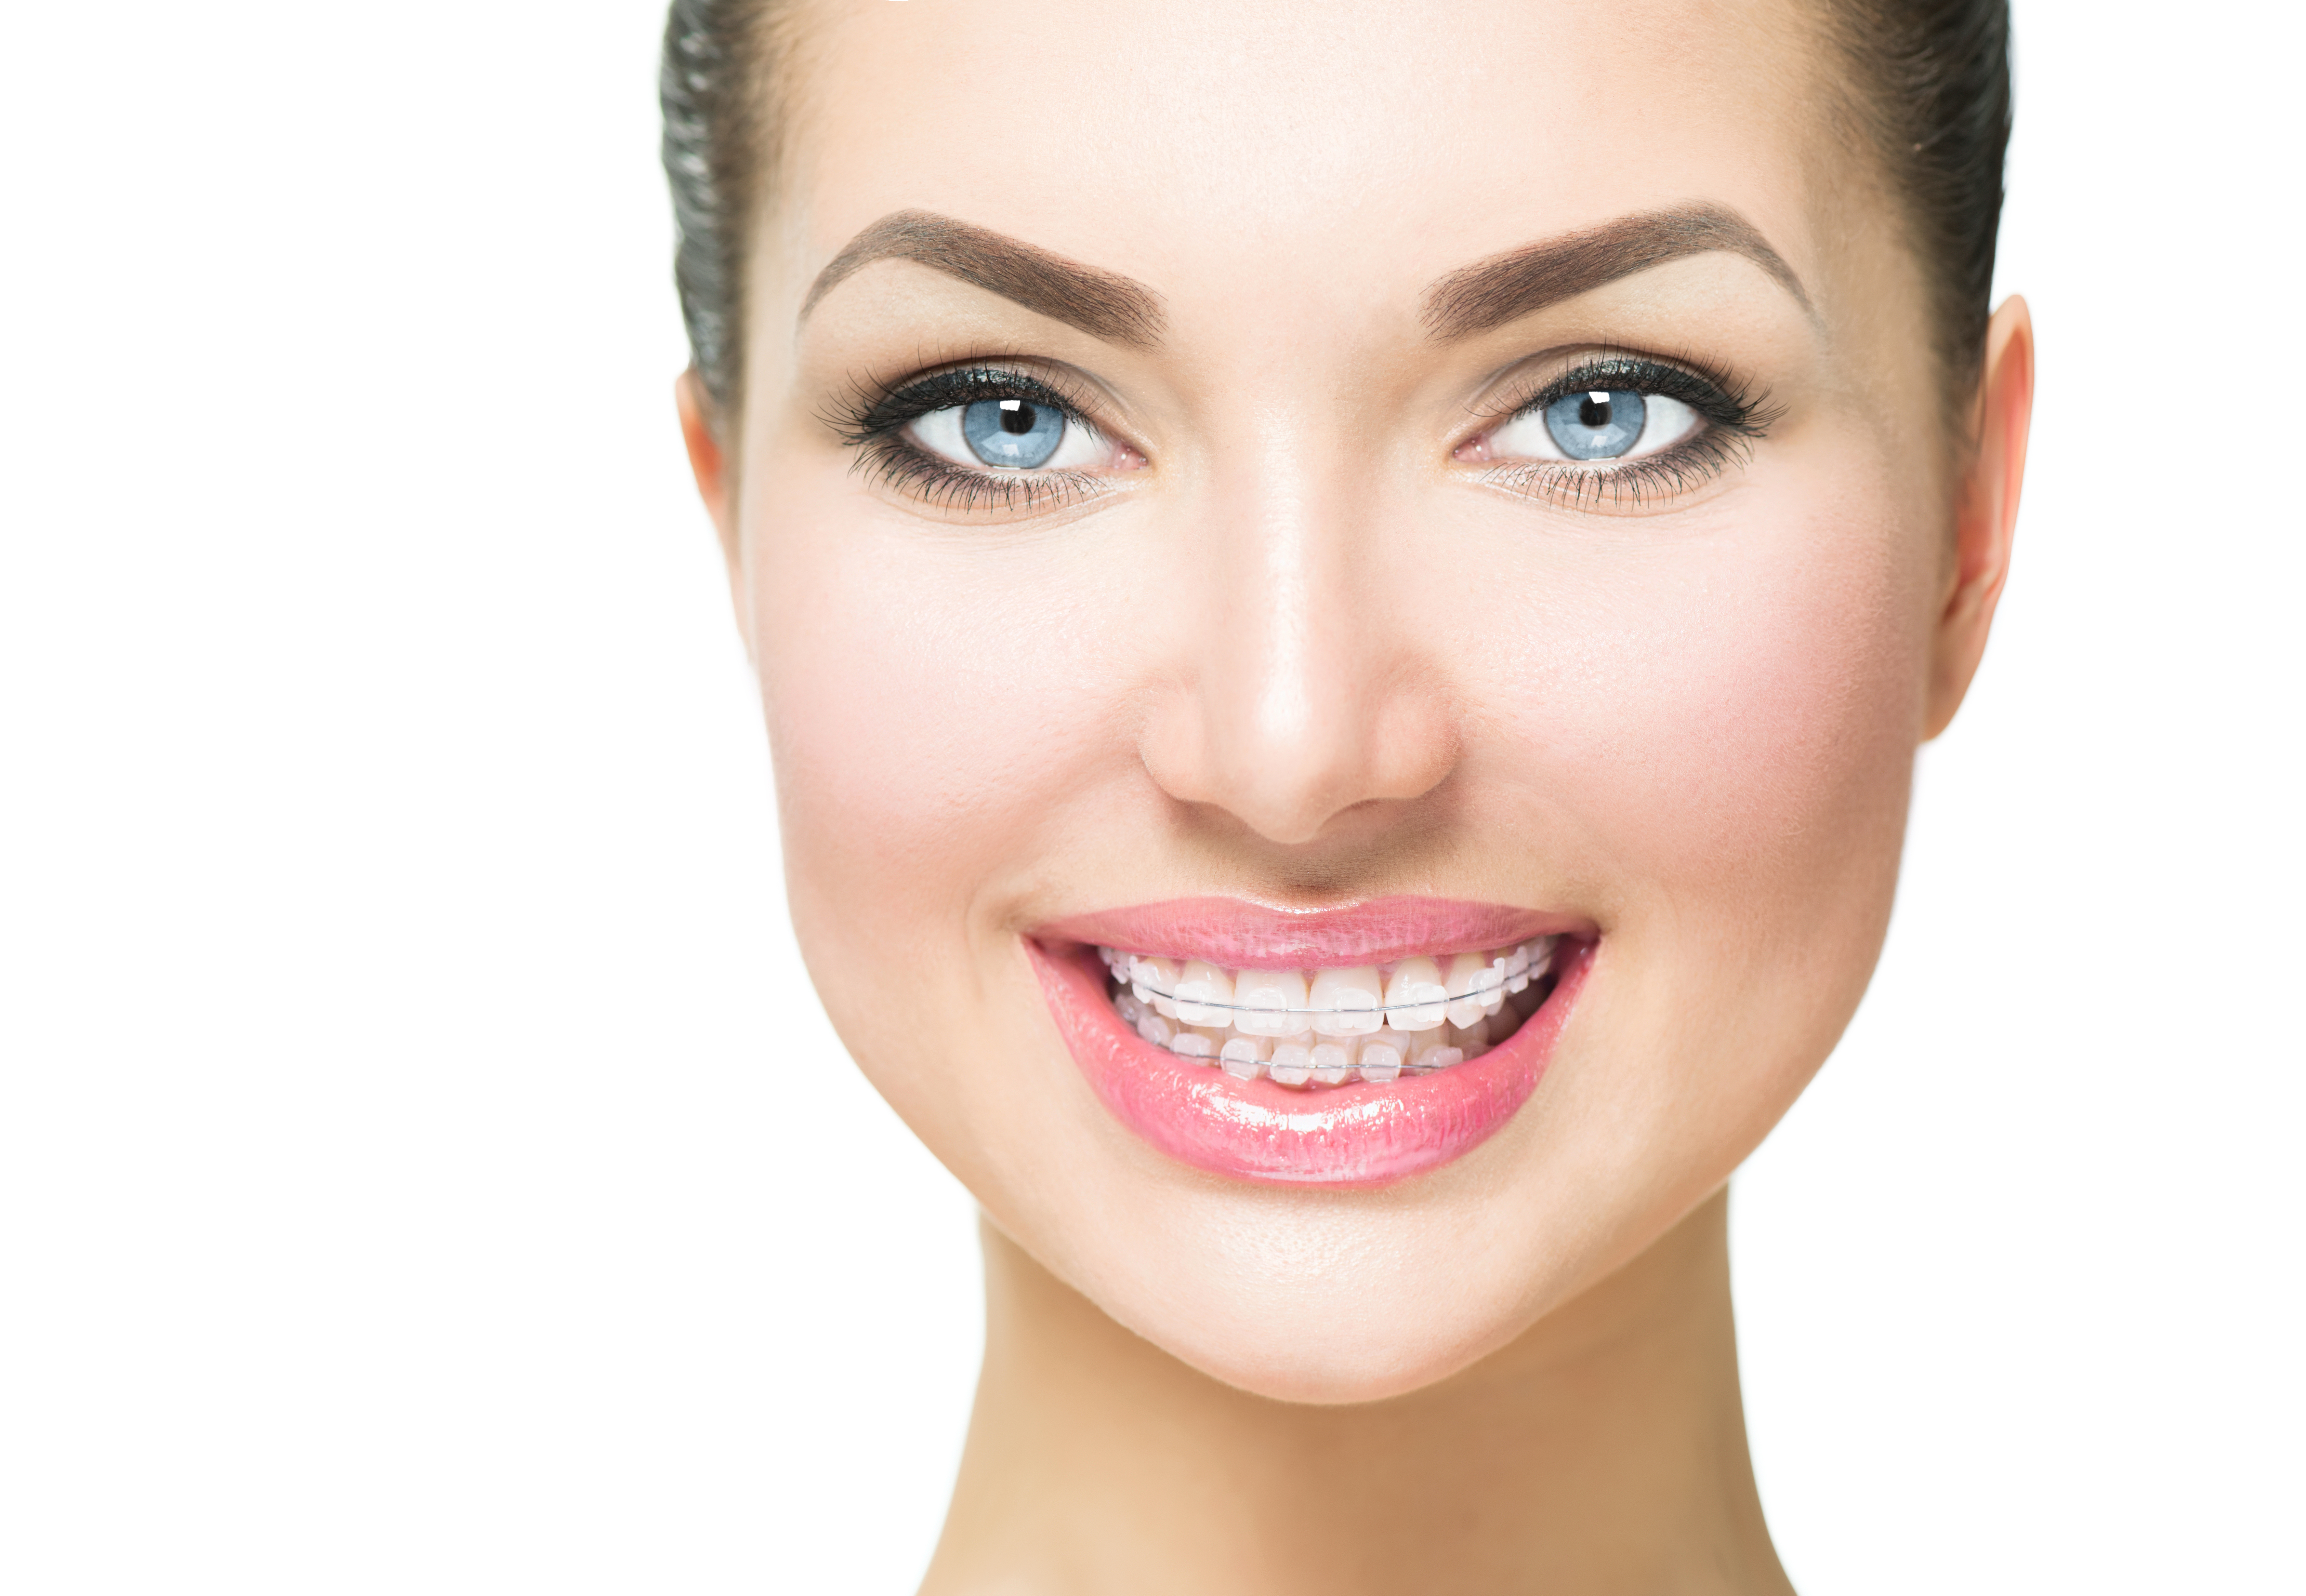 Adult Braces In Manchester – Are They Worth It?